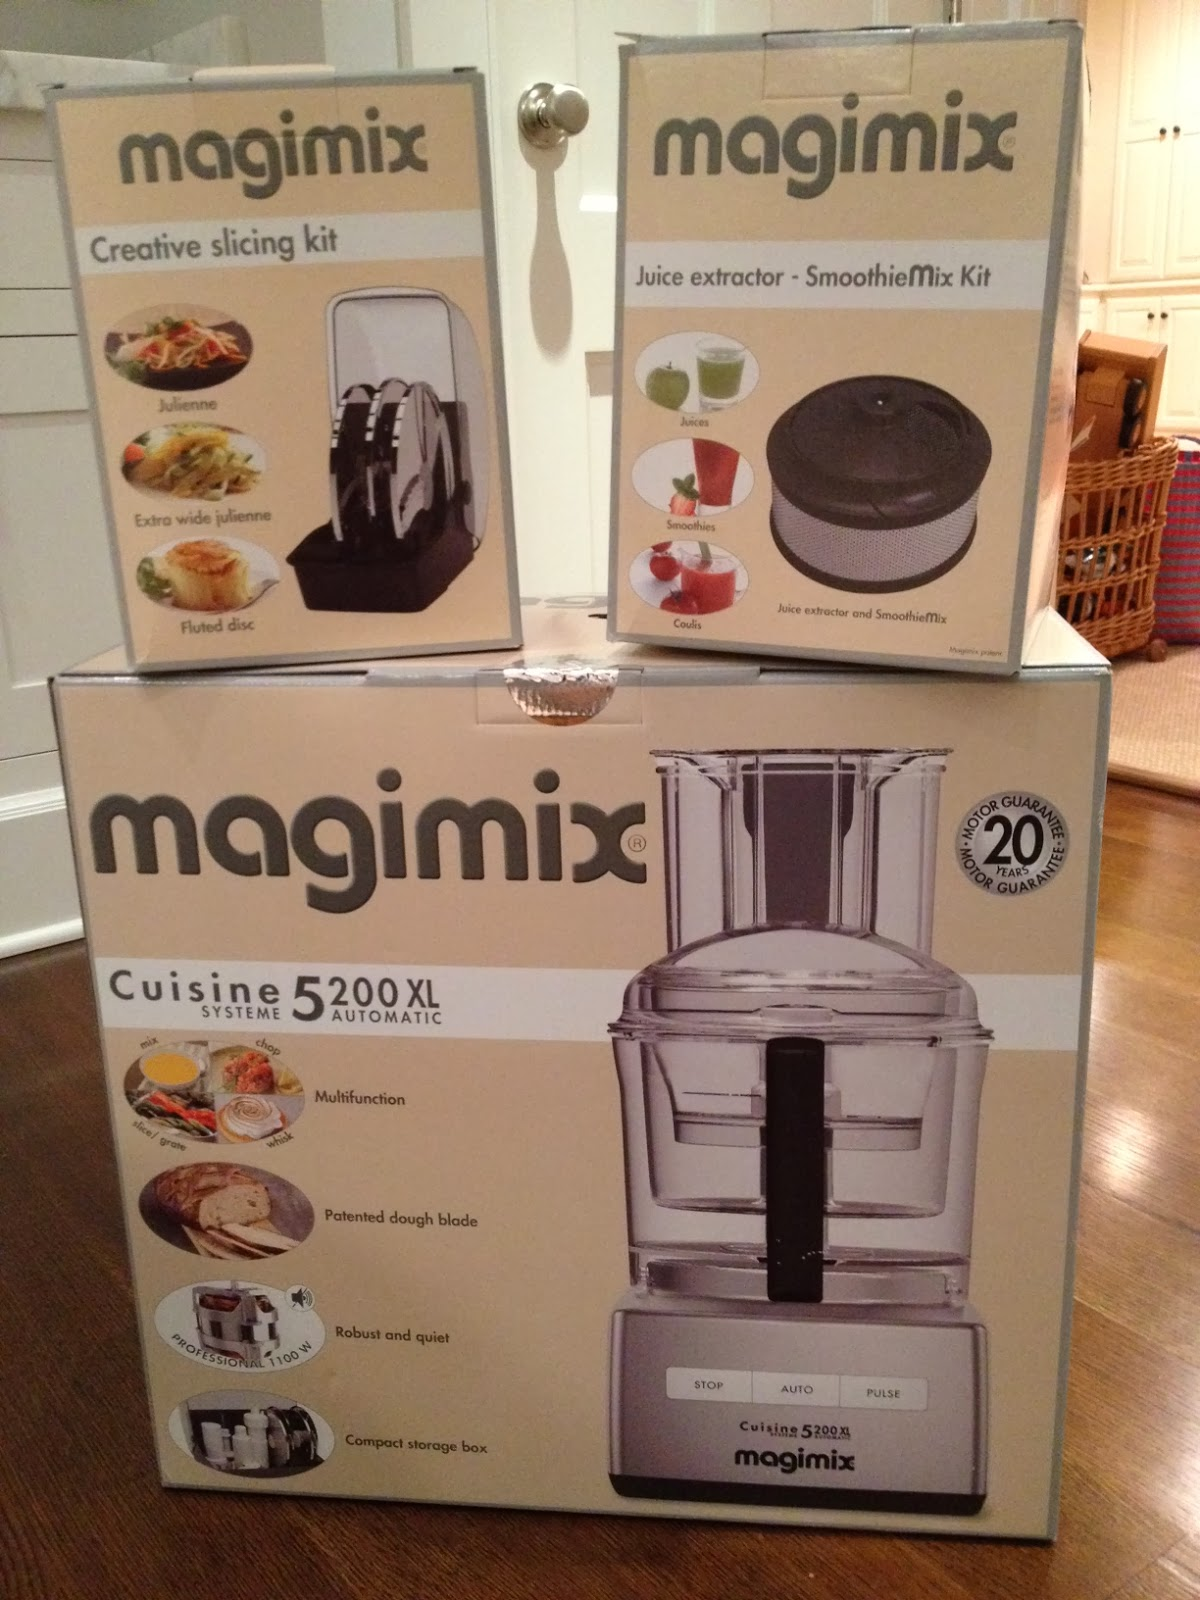 The Full Plate Blog: Magimix review - stocking my freezer